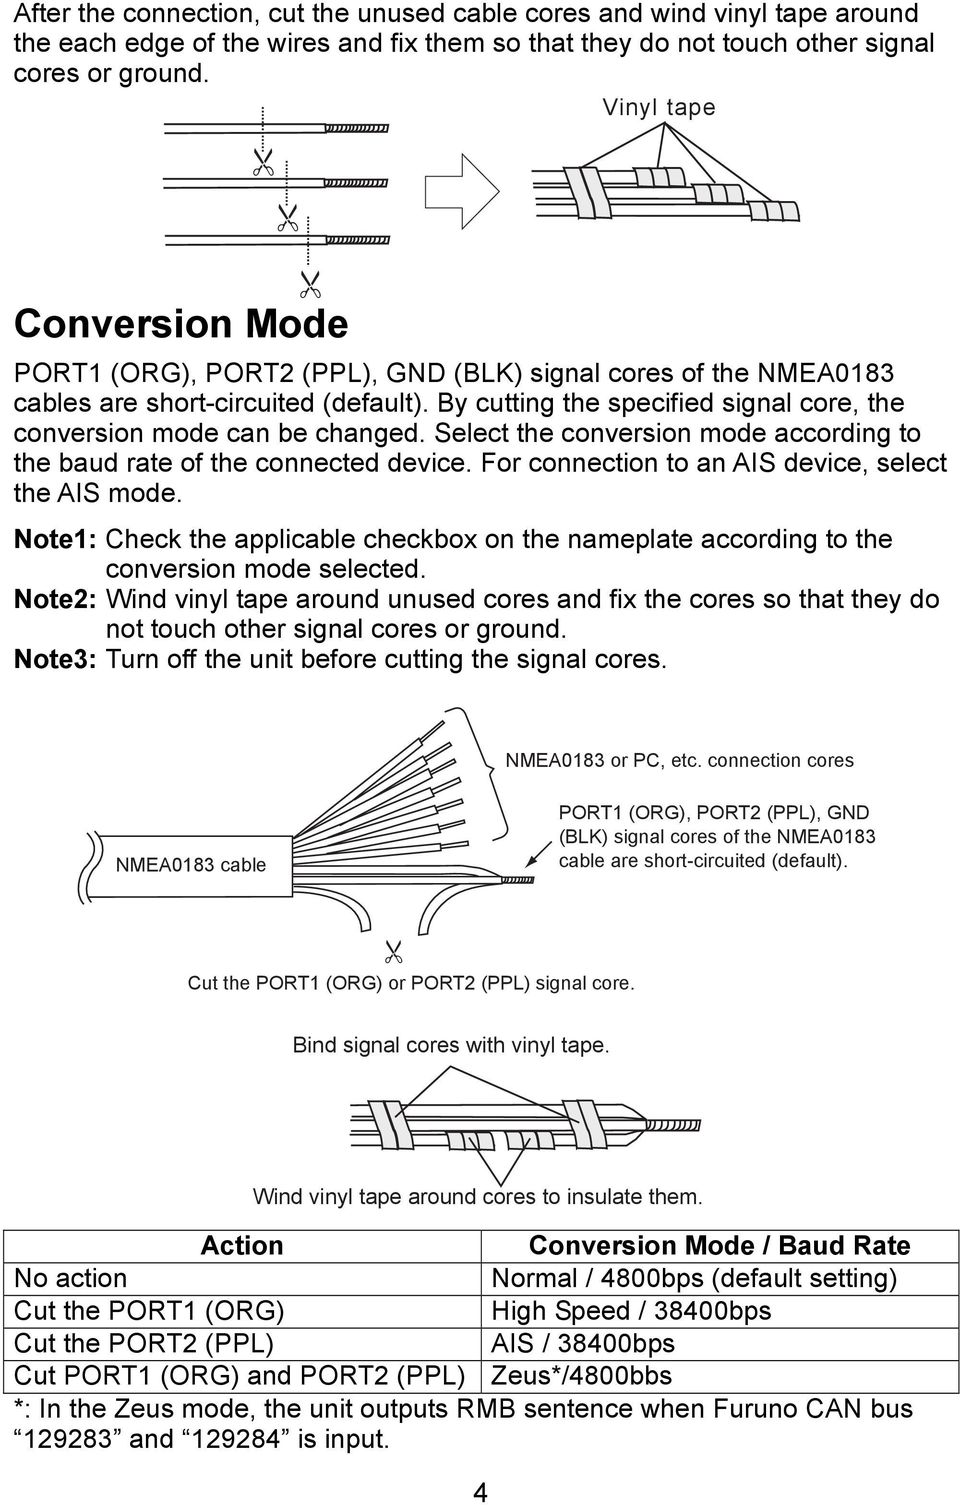 By cutting the specified signal core, the conversion mode can be changed. Select the conversion mode according to the baud rate of the connected device.